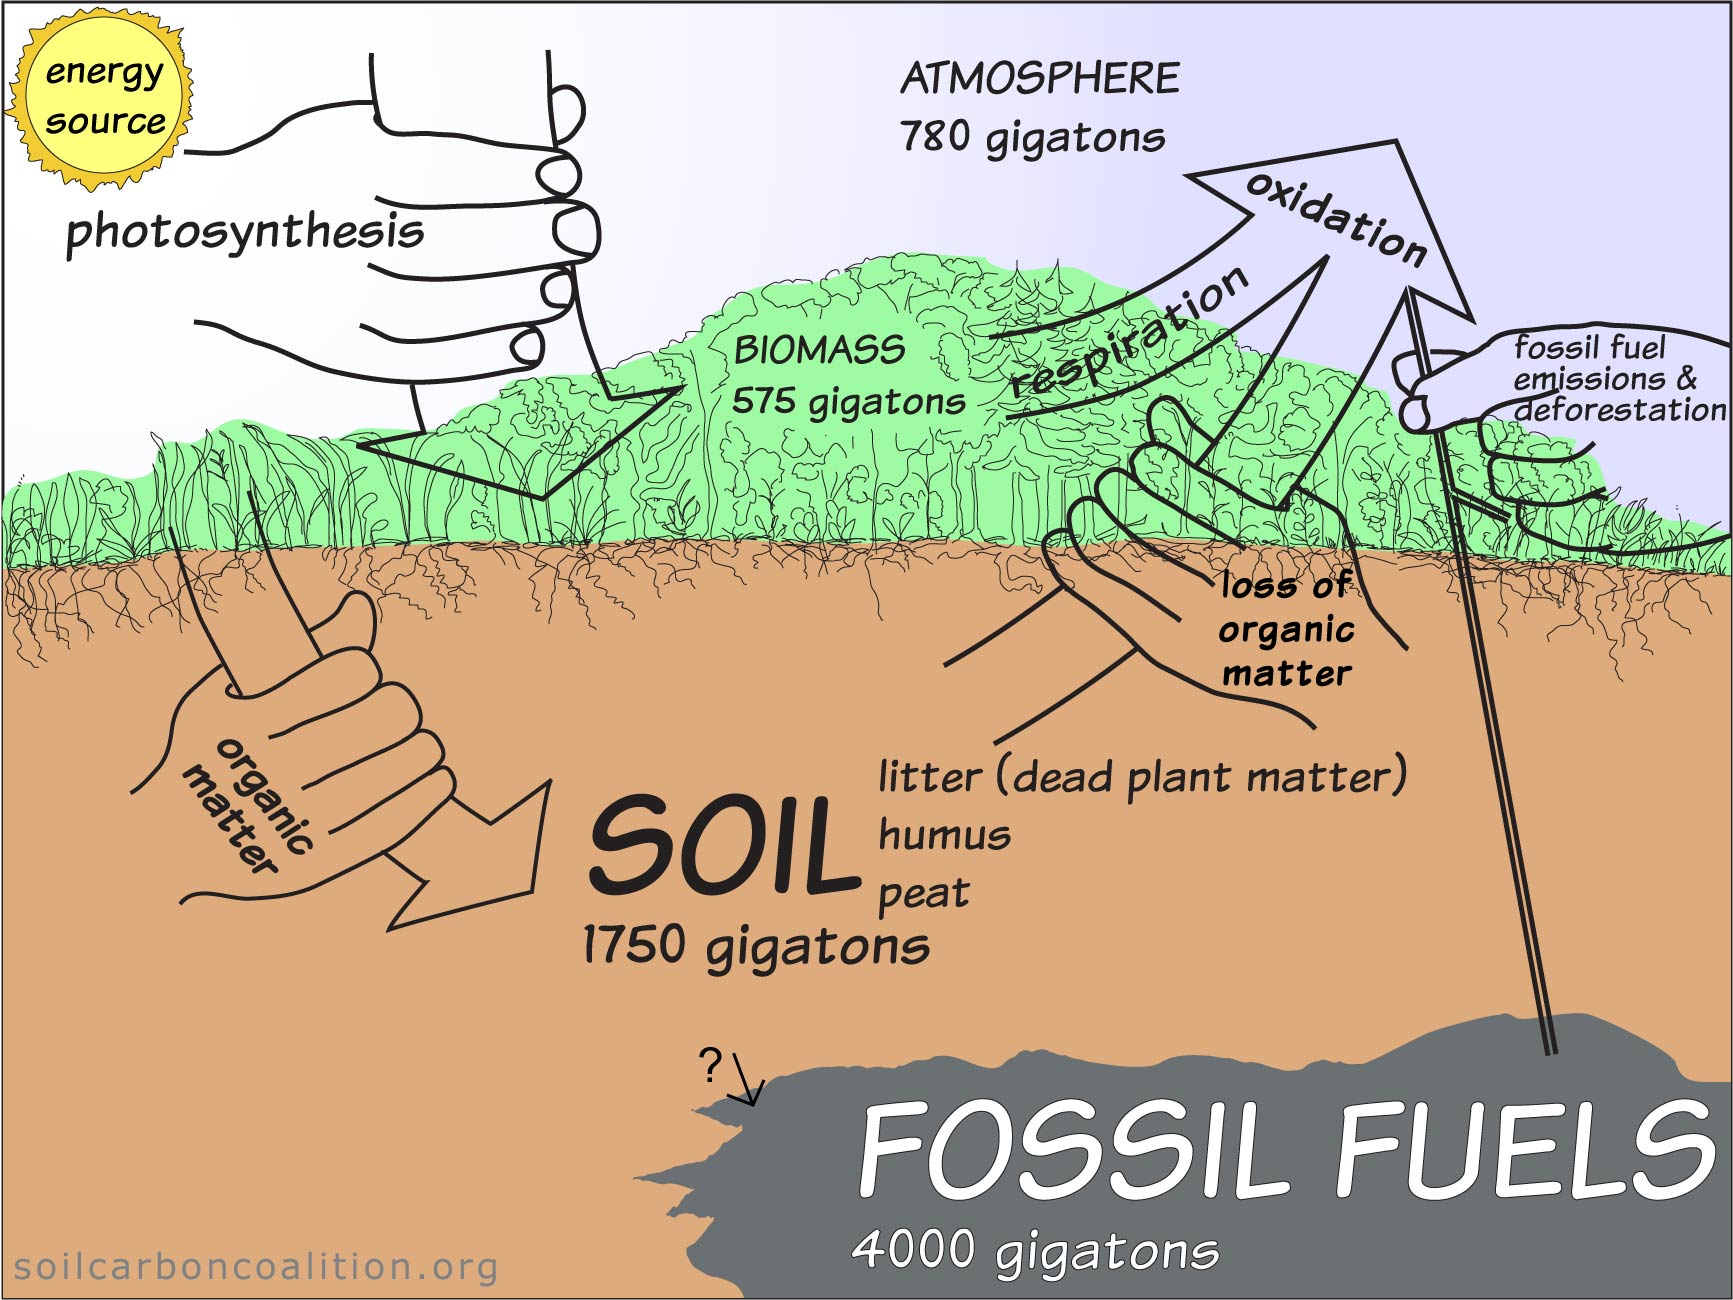 turning air into dirt: using atmospheric carbon and solar energy to